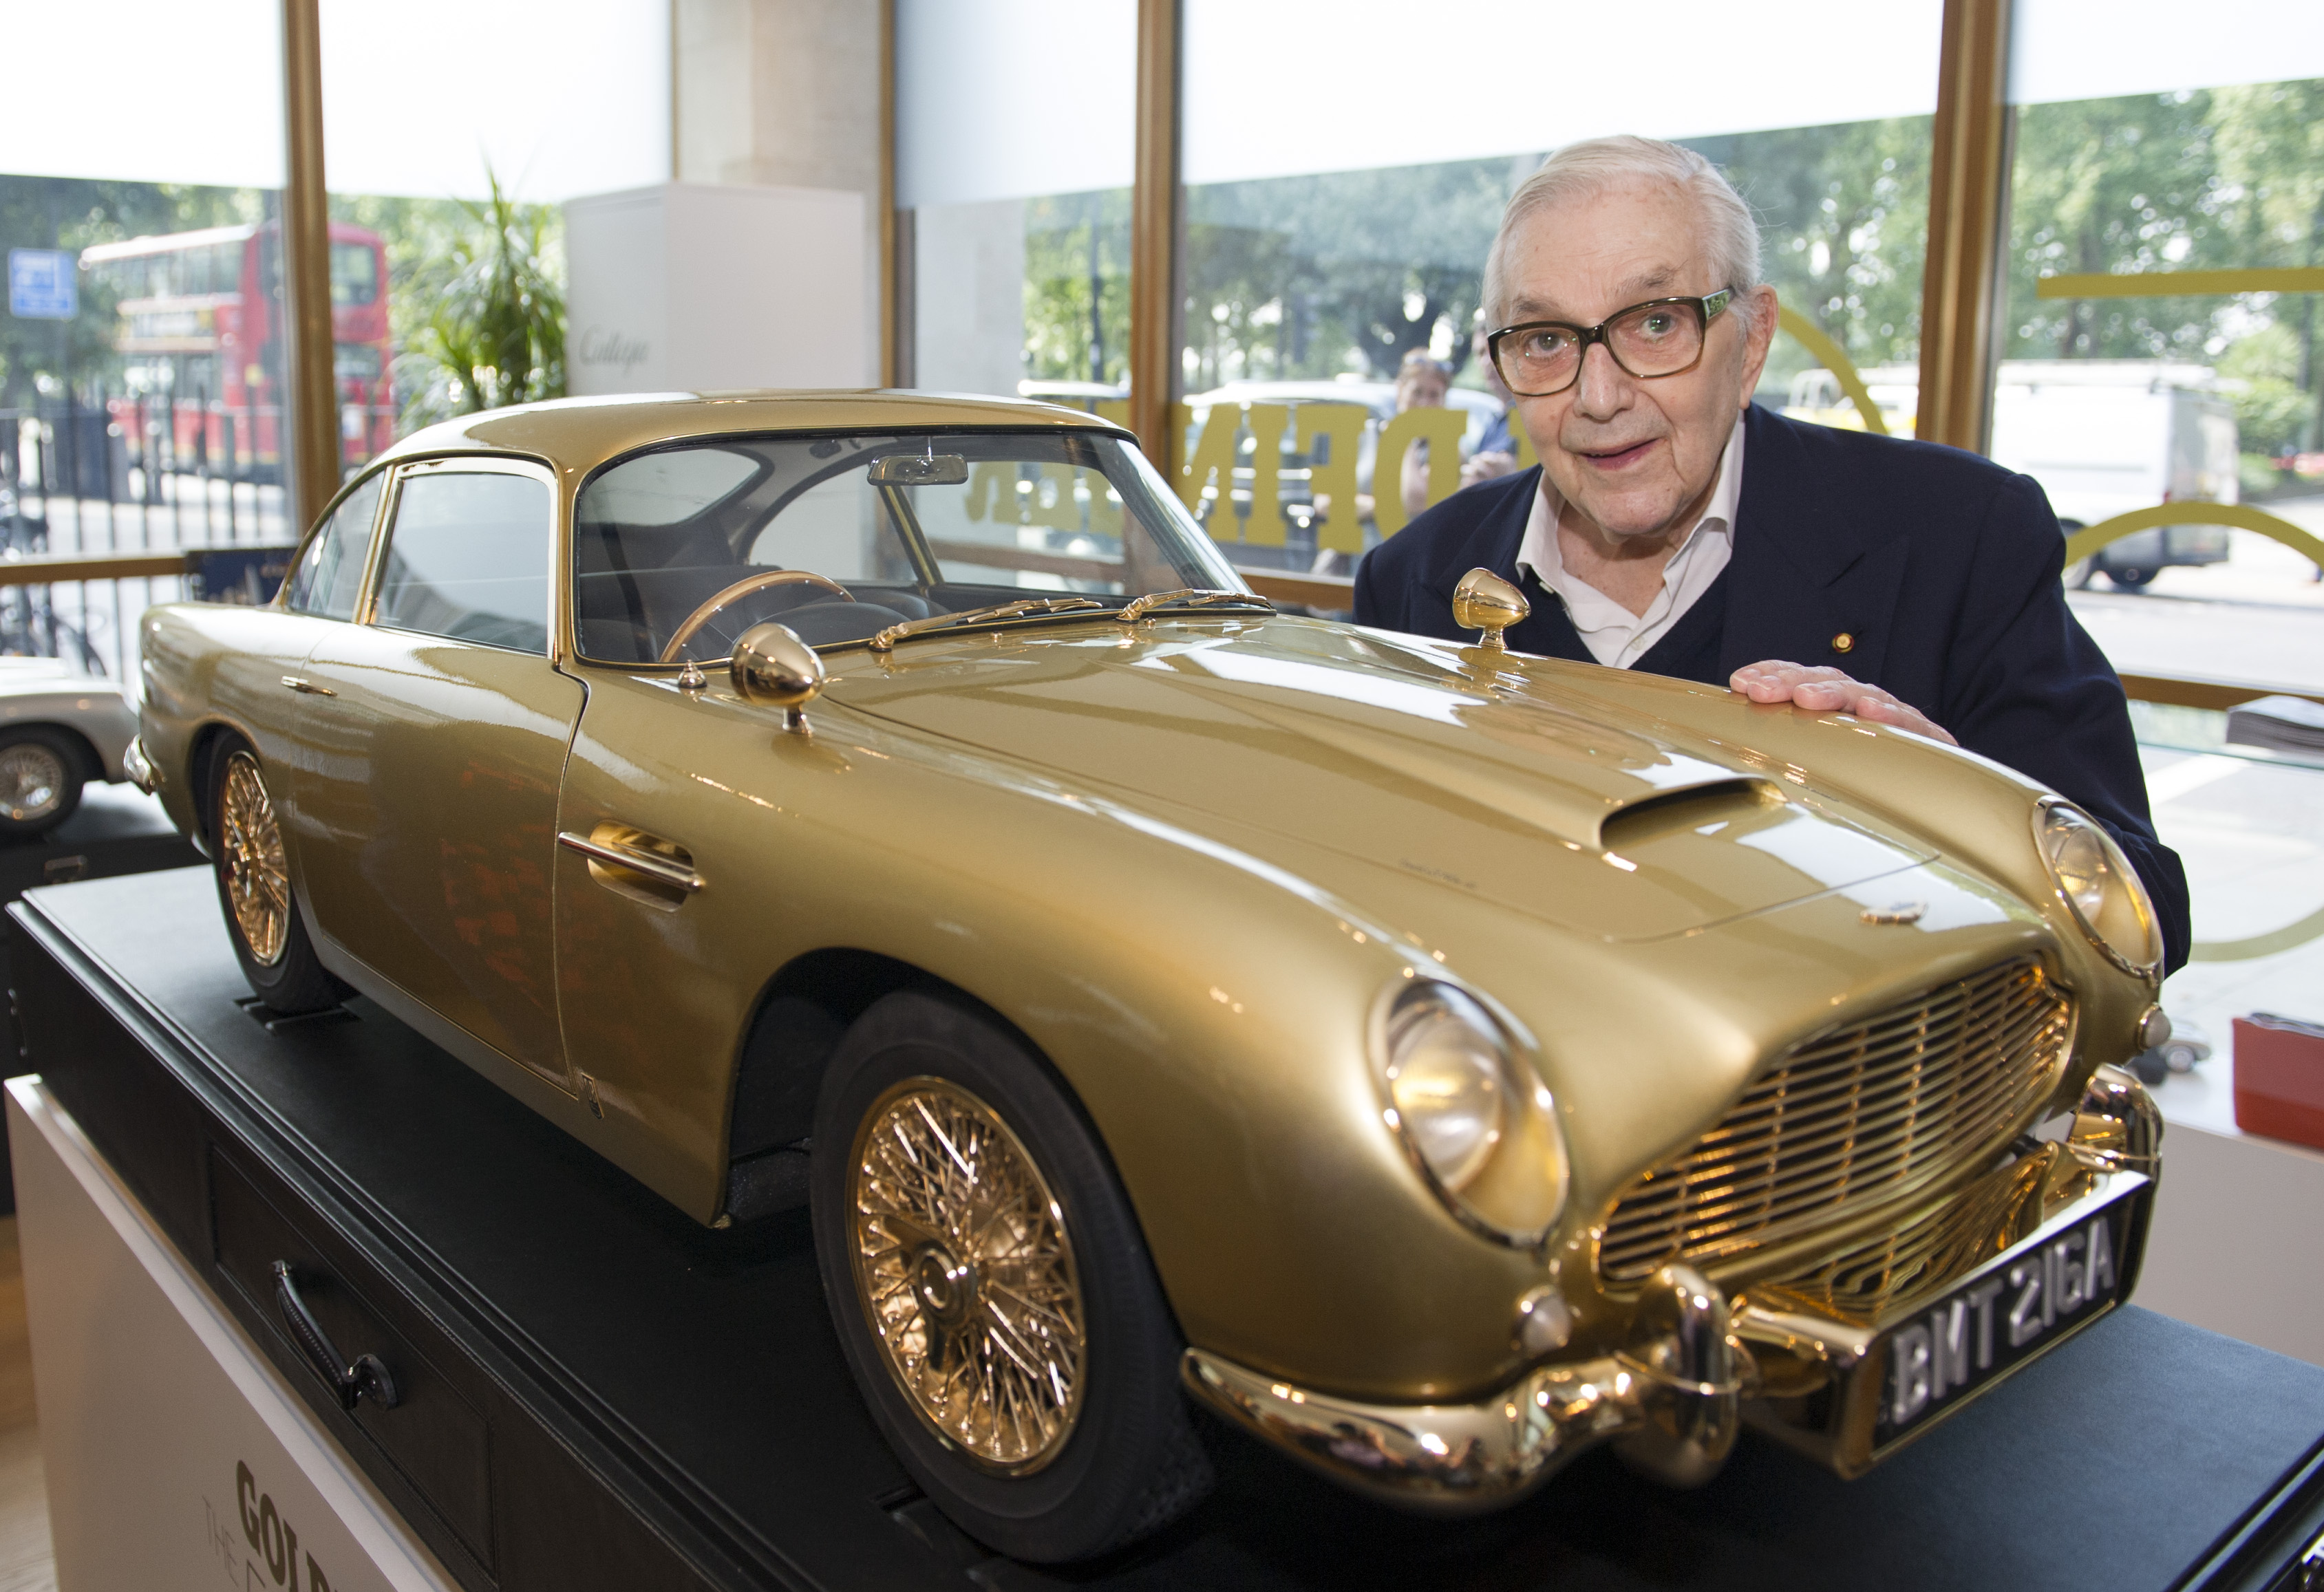 1964 Aston Martin Db5 >> Gold Aston Martin DB5 Model Car Sells for $90k - autoevolution